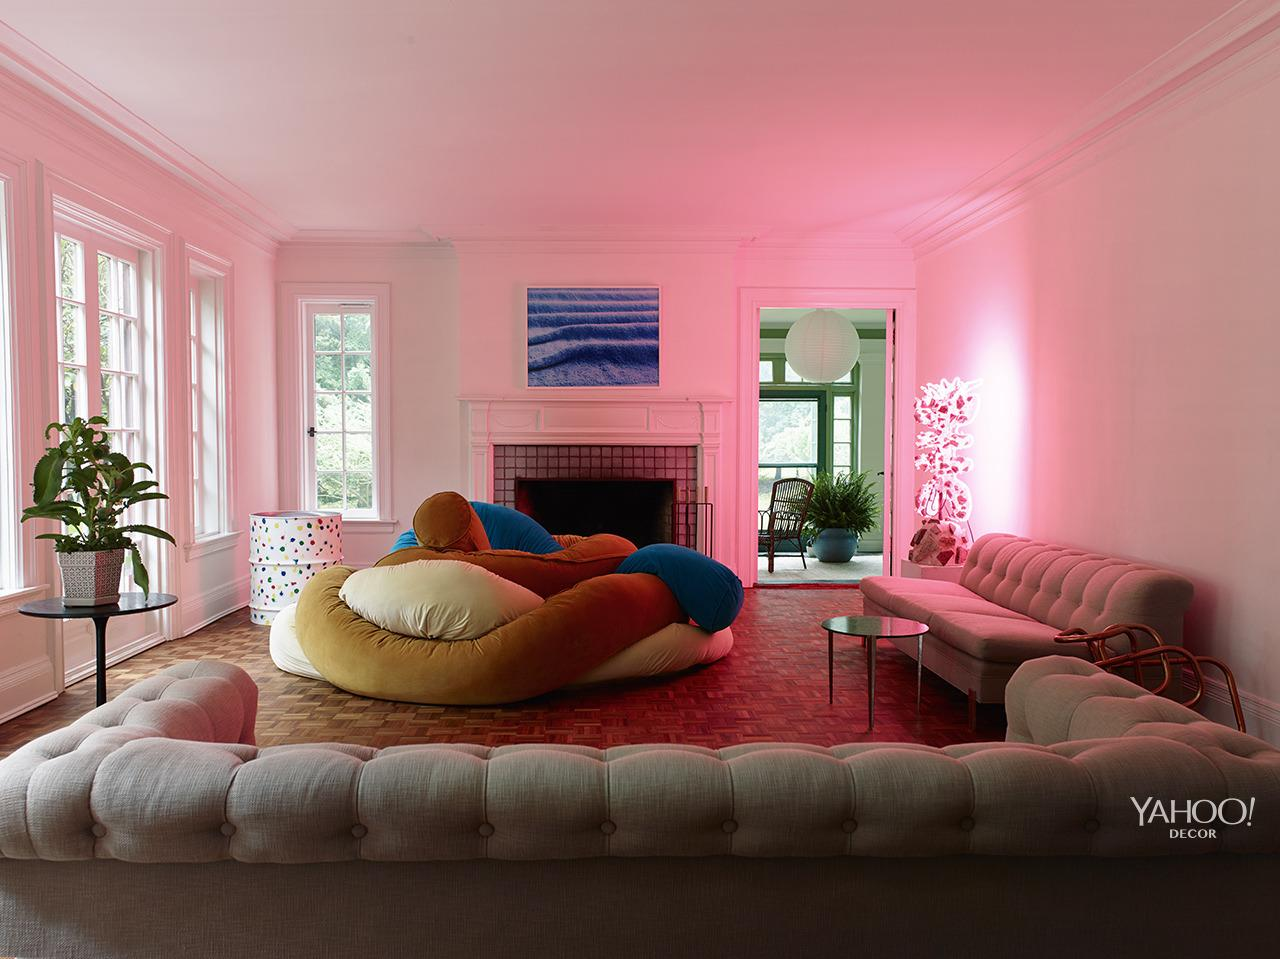 """<p>""""We call this the 'cozy room,' with my 'Mrs. Noodle Pillow' in the middle.""""<br /></p>"""